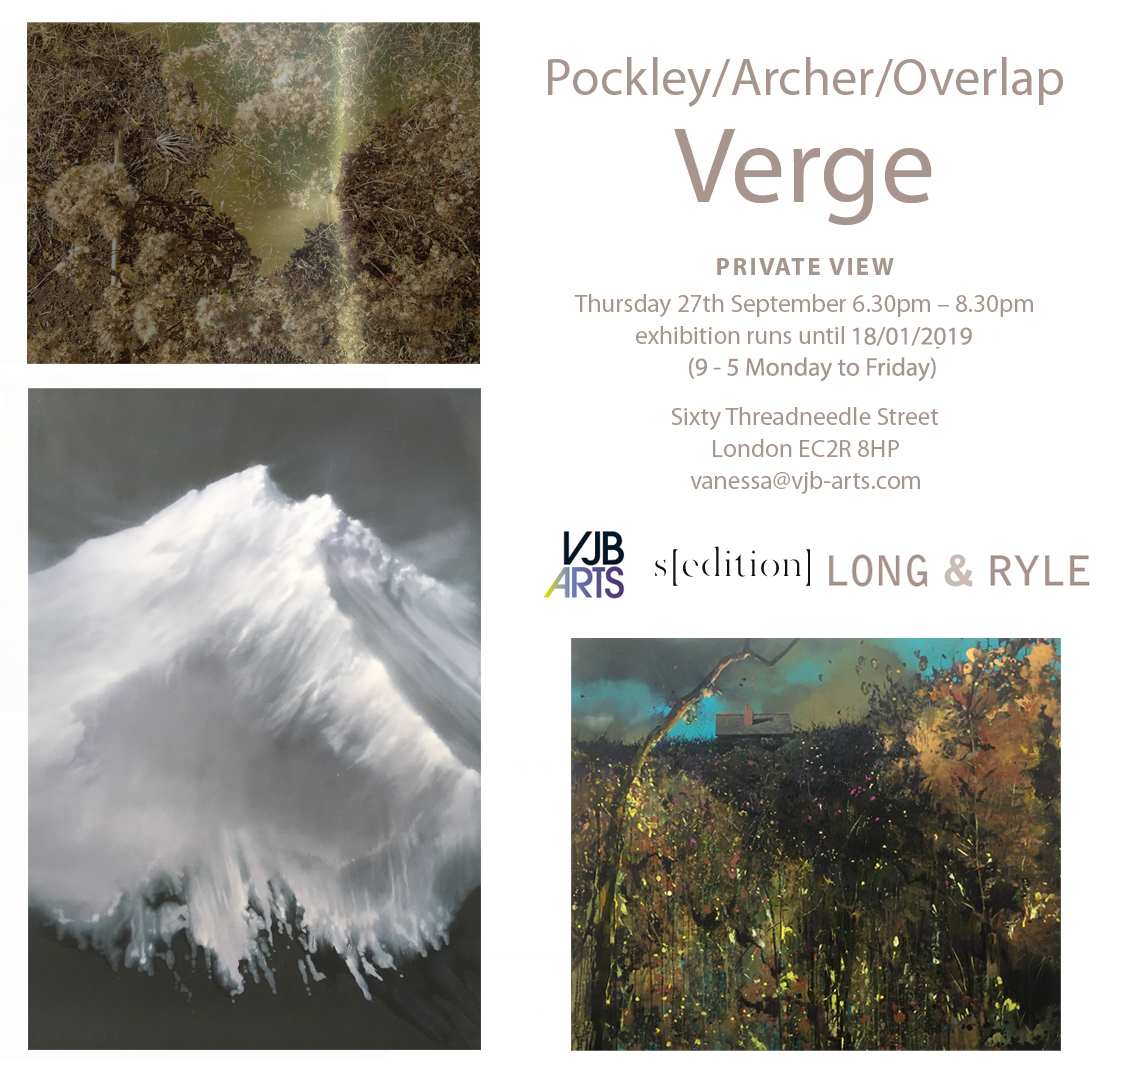 Verge Press Release, art exhibitions on in October